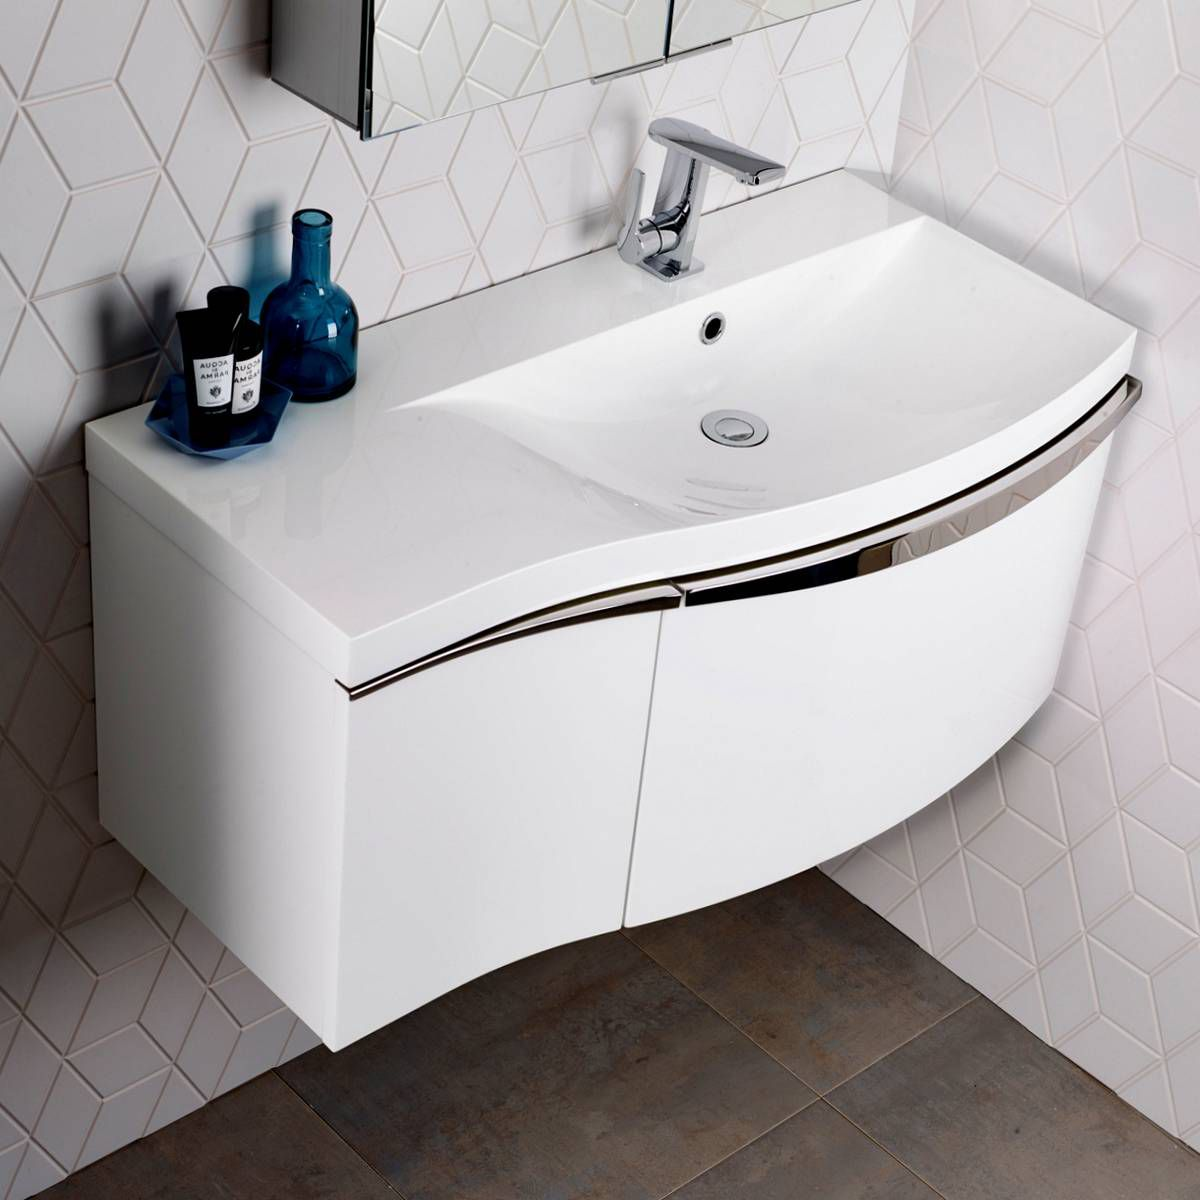 Roper rhodes serif wall mounted vanity unit uk bathrooms - Designer wall hung bathroom vanity units ...